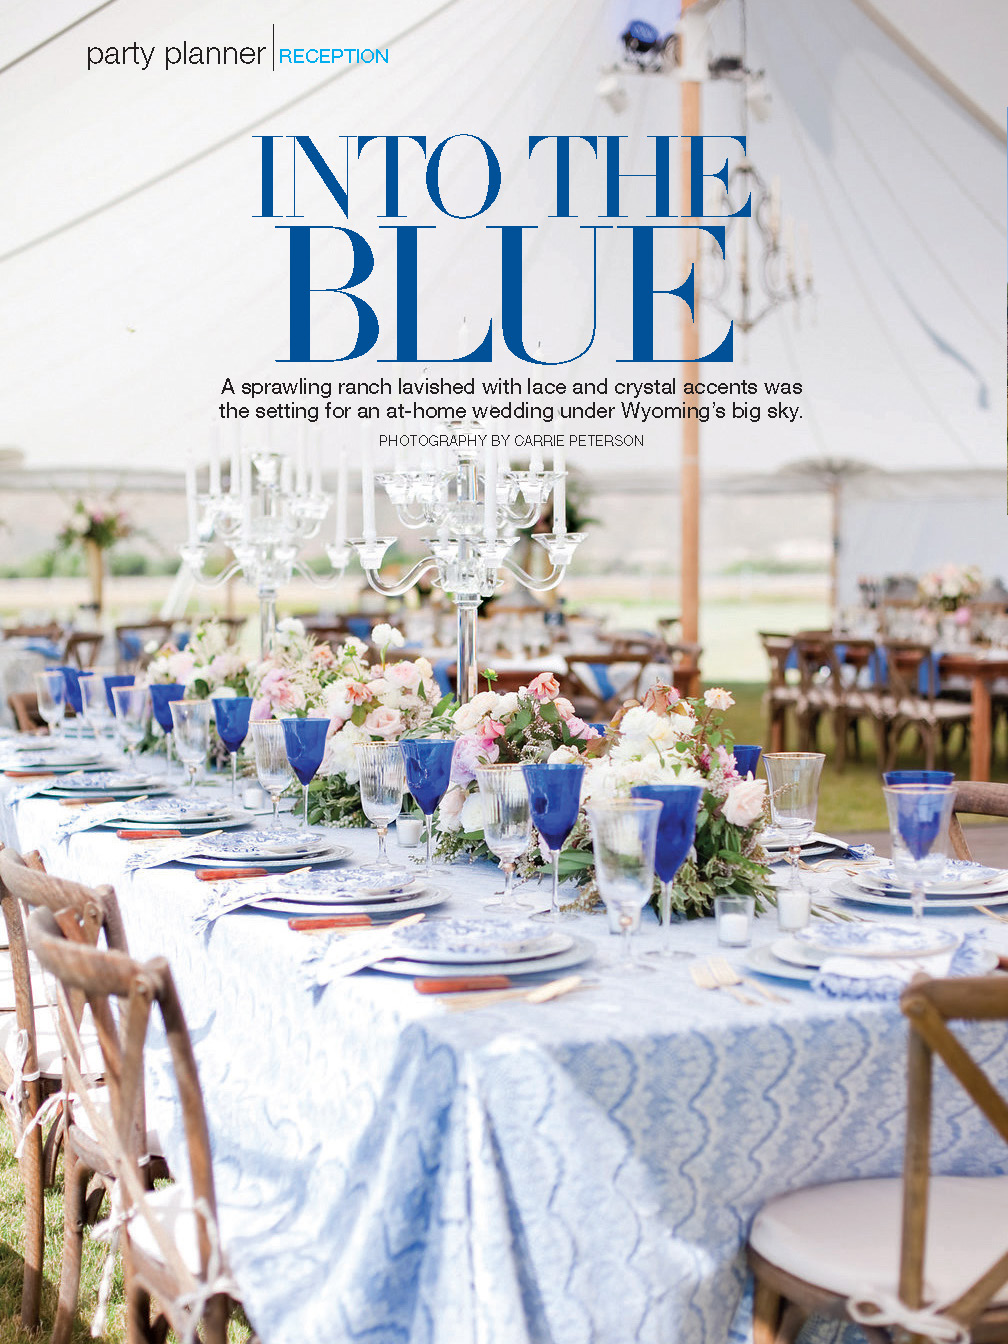 The Bridal Guide Sept/Oct 2018